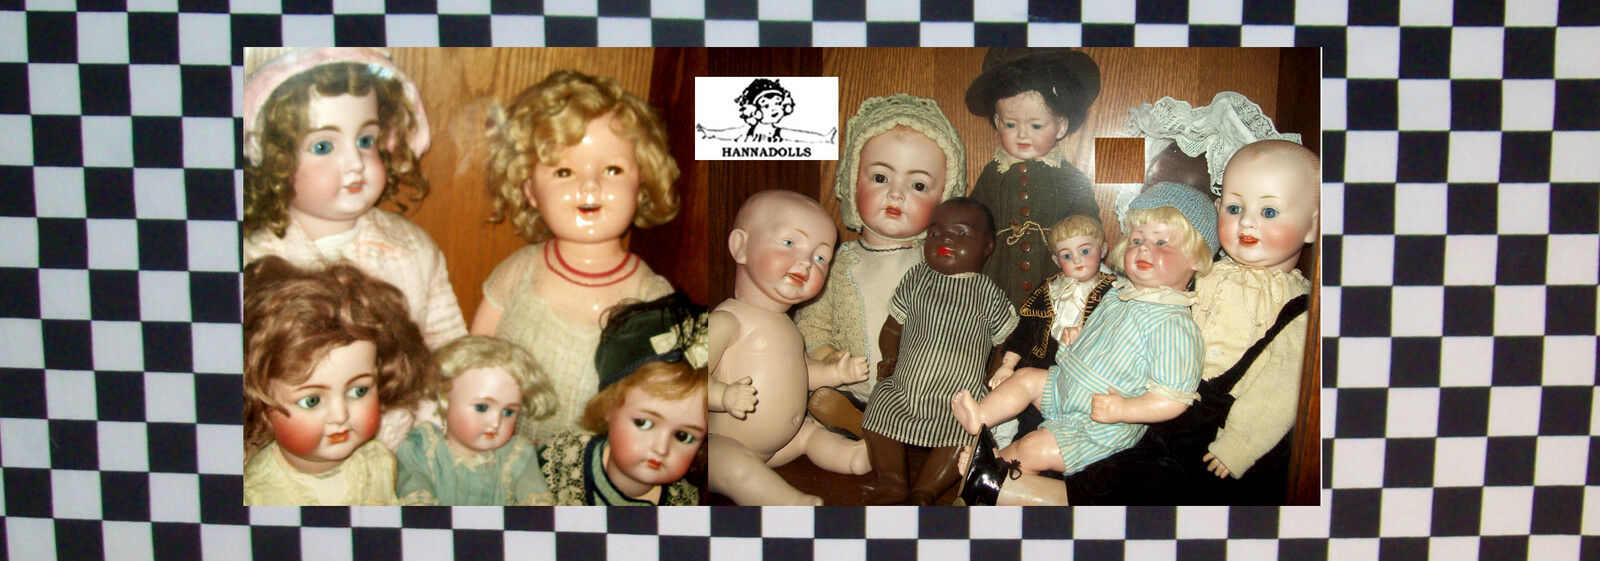 Hannadolls Antiques and More